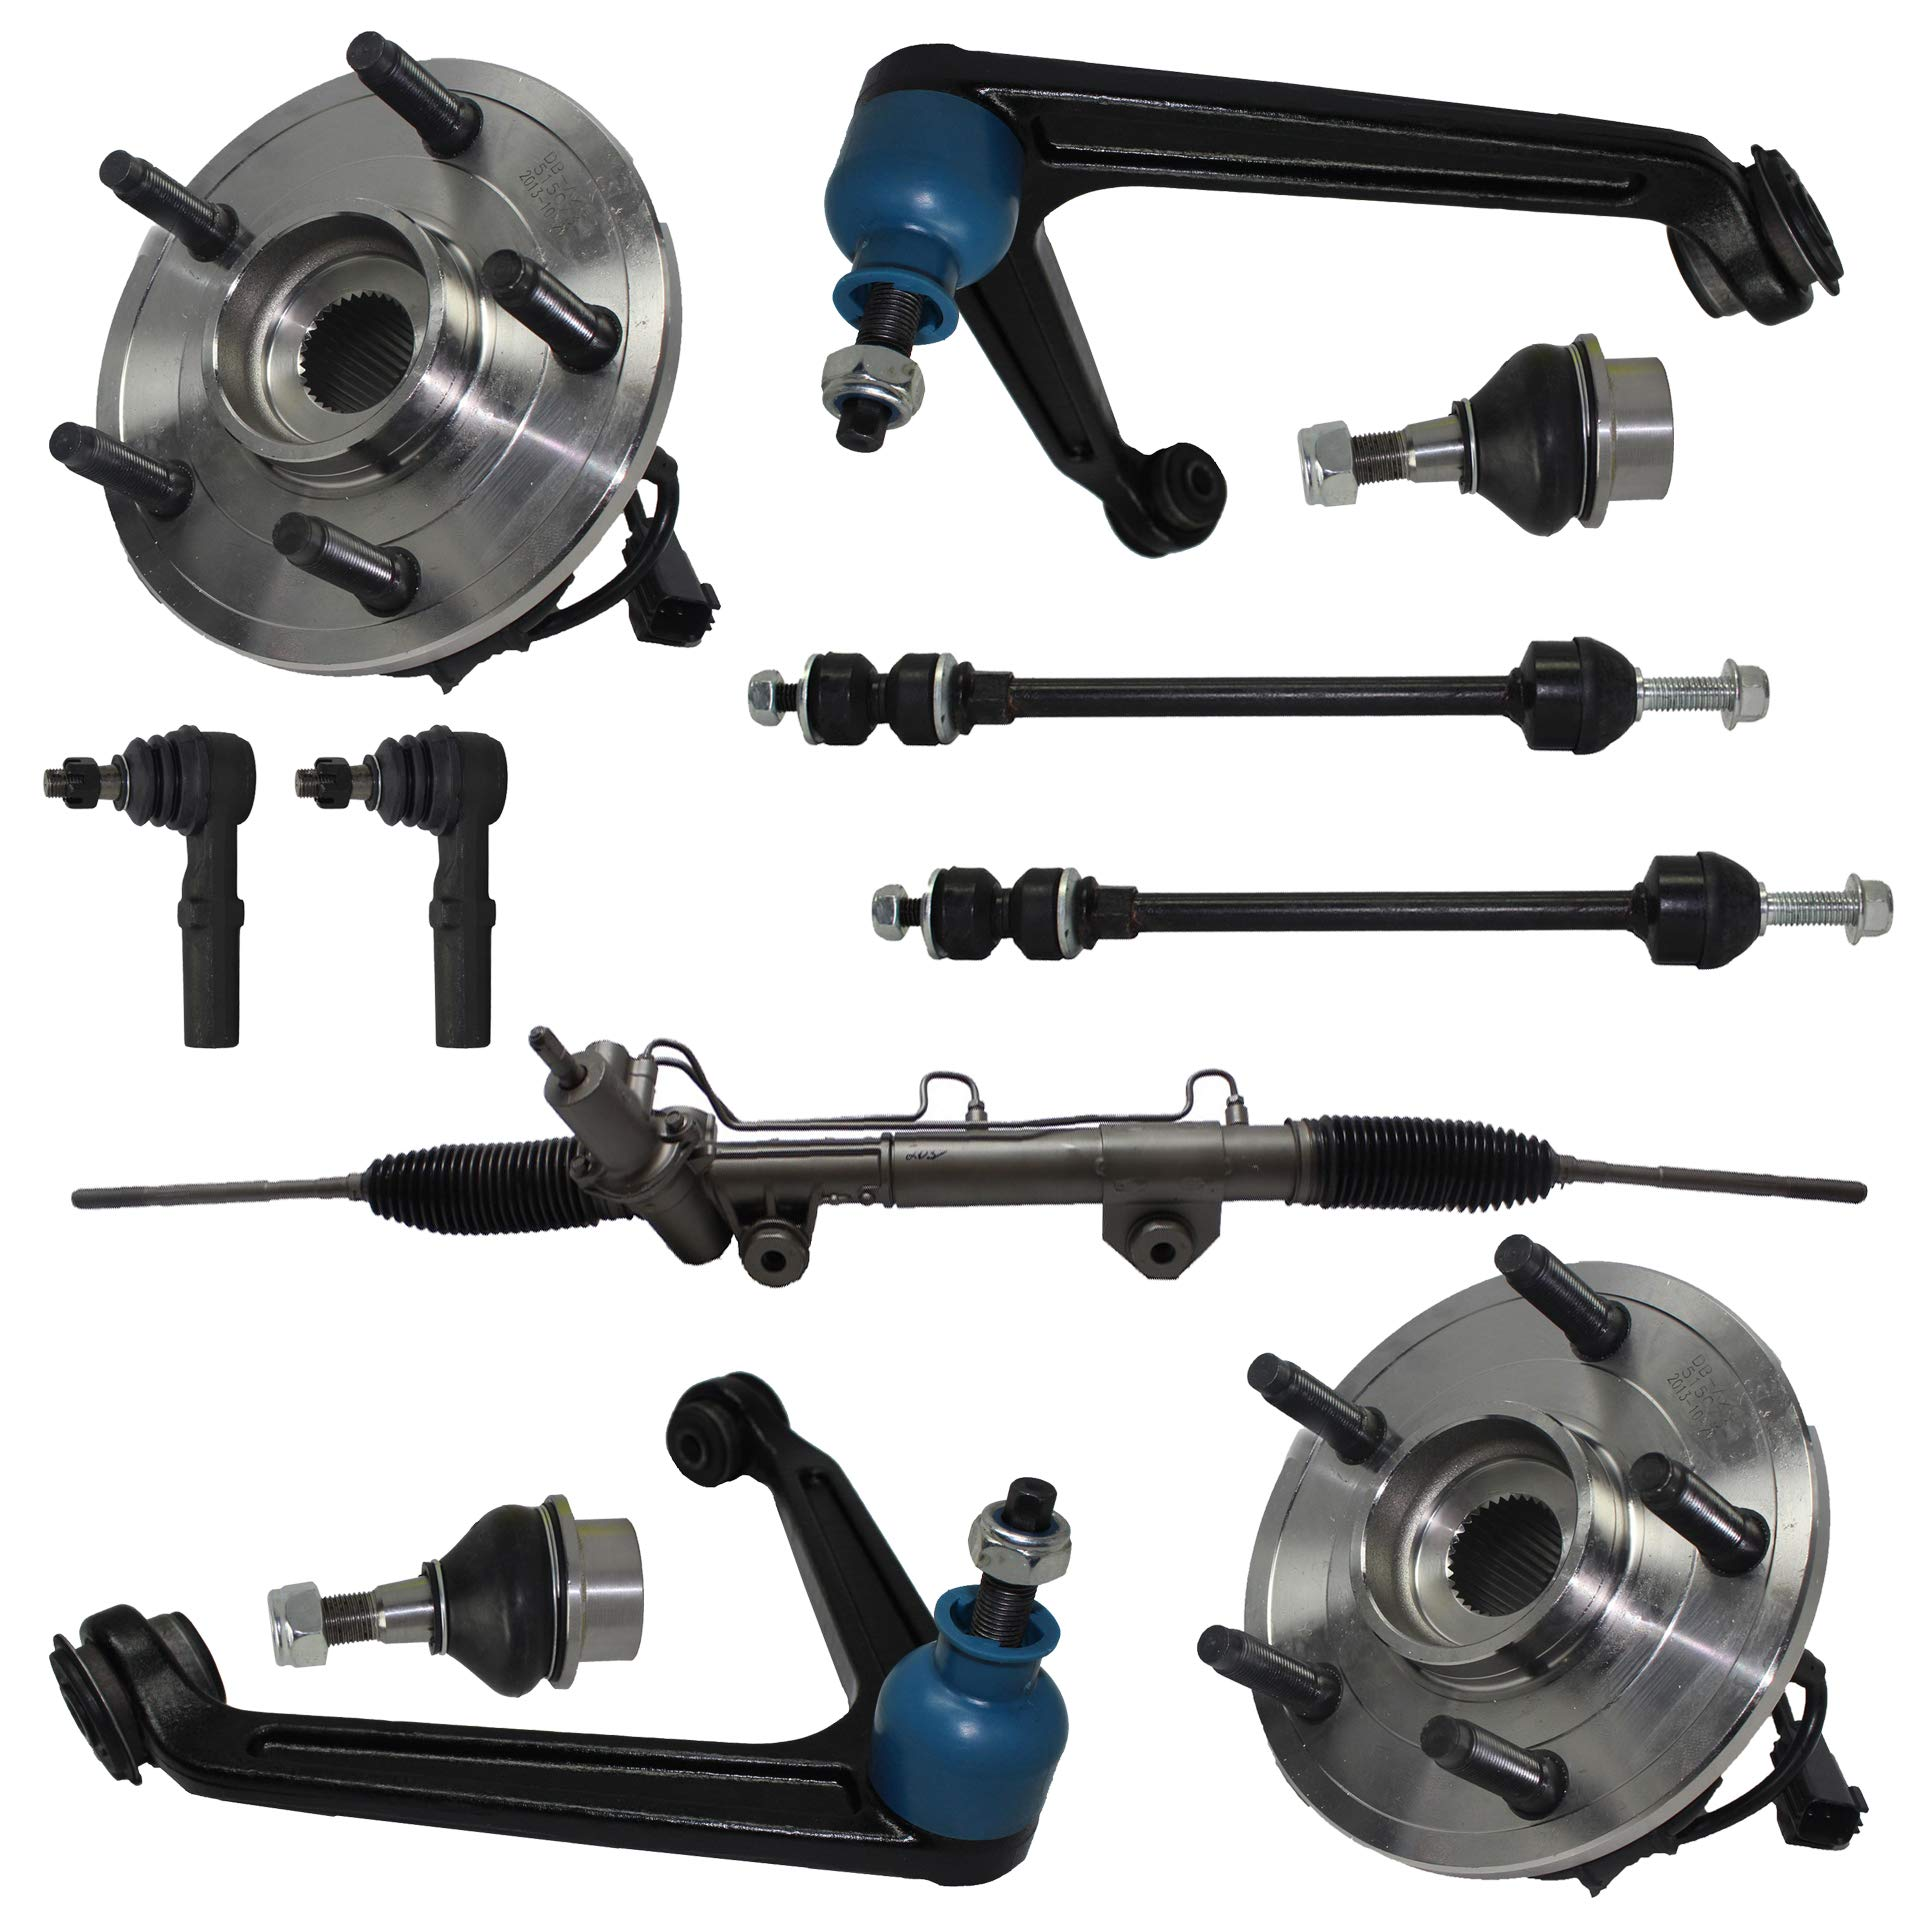 Detroit Axle Complete Power Steering Rack and Pinion Assembly for 2006-2013 BMW 3-Series